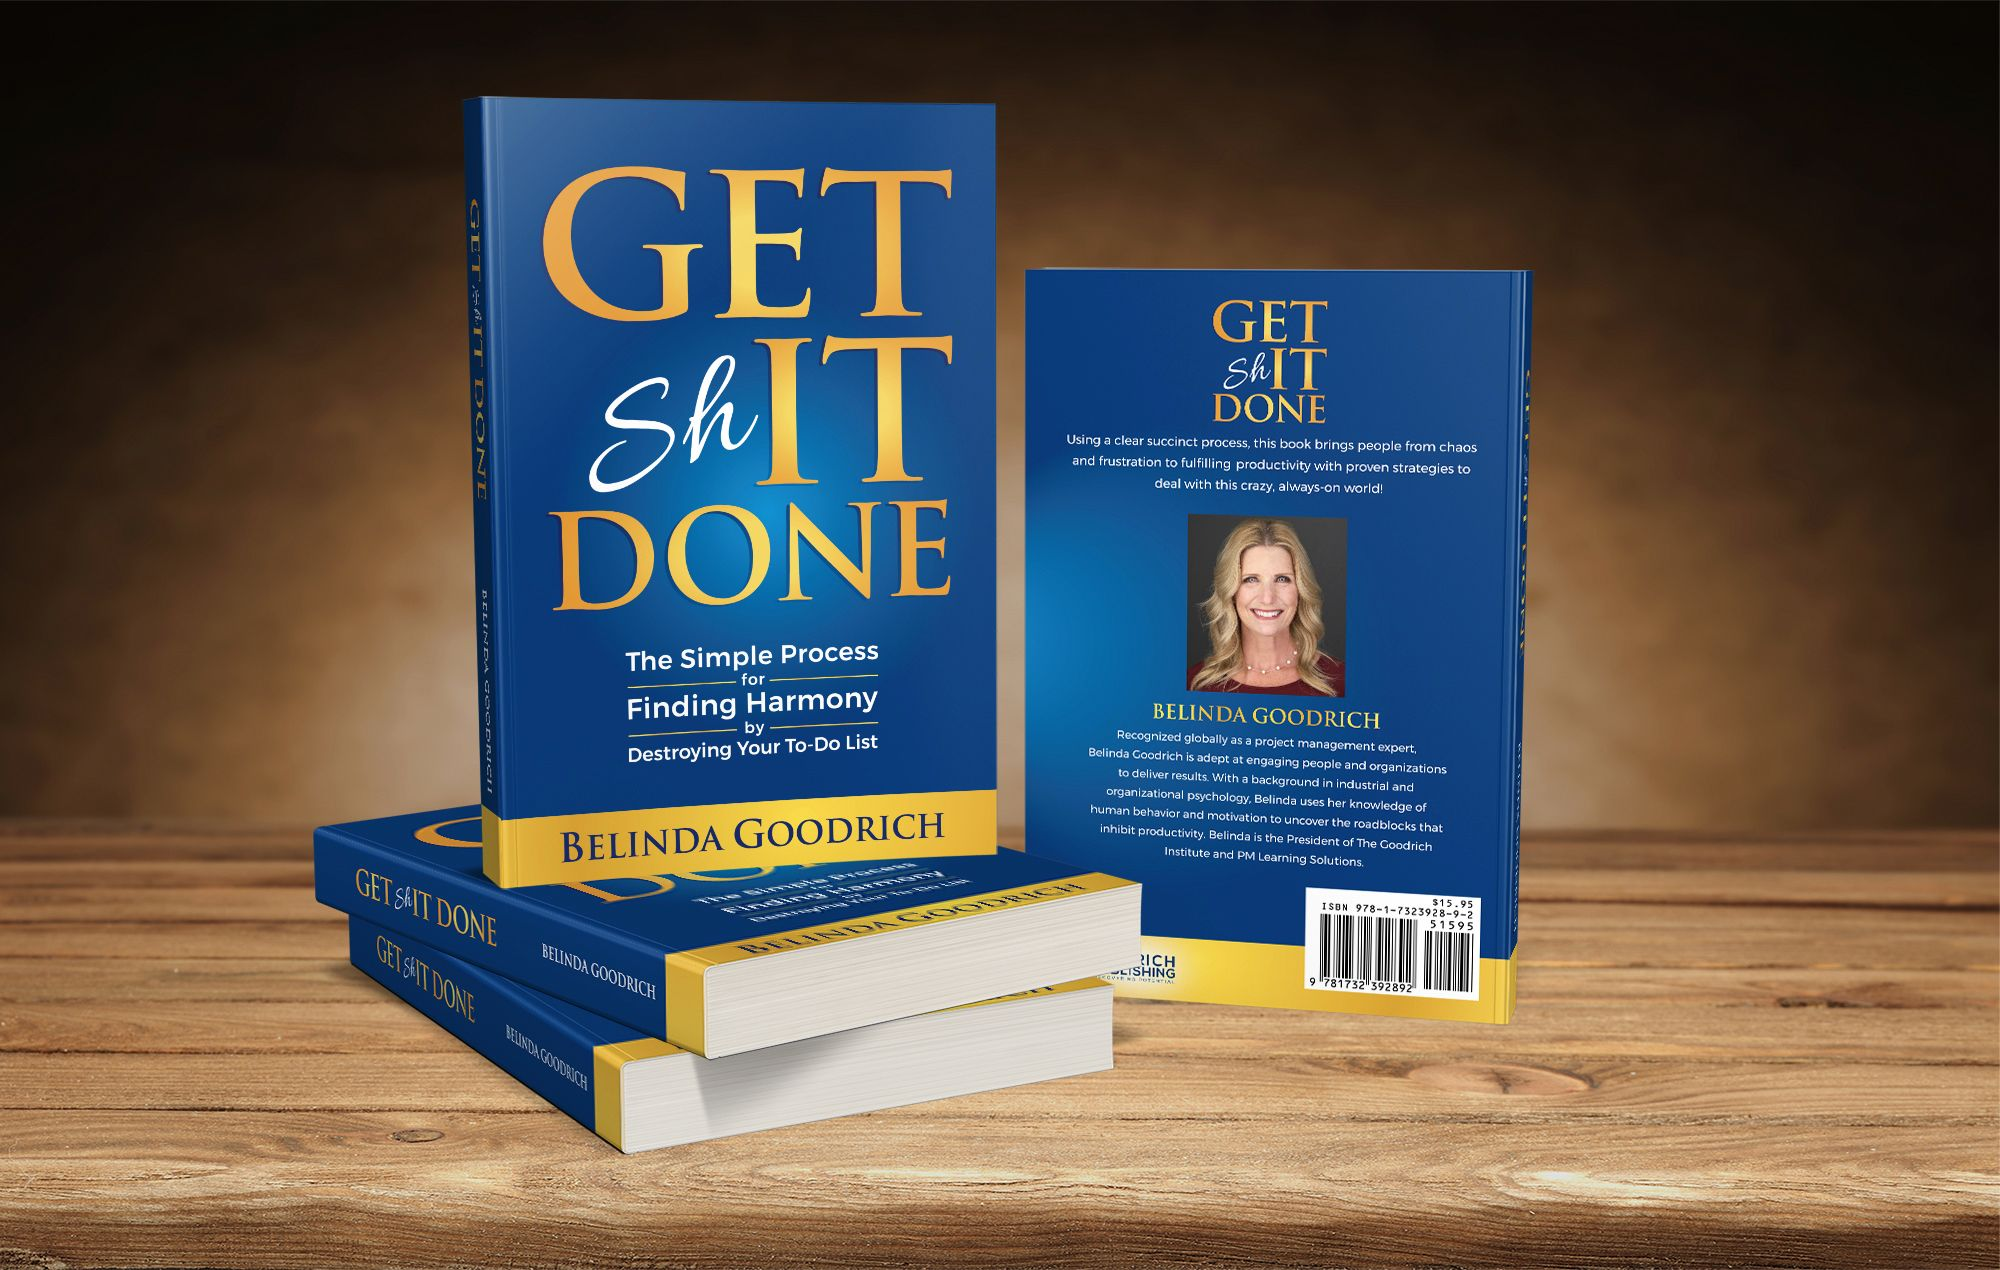 Get It Done, the book